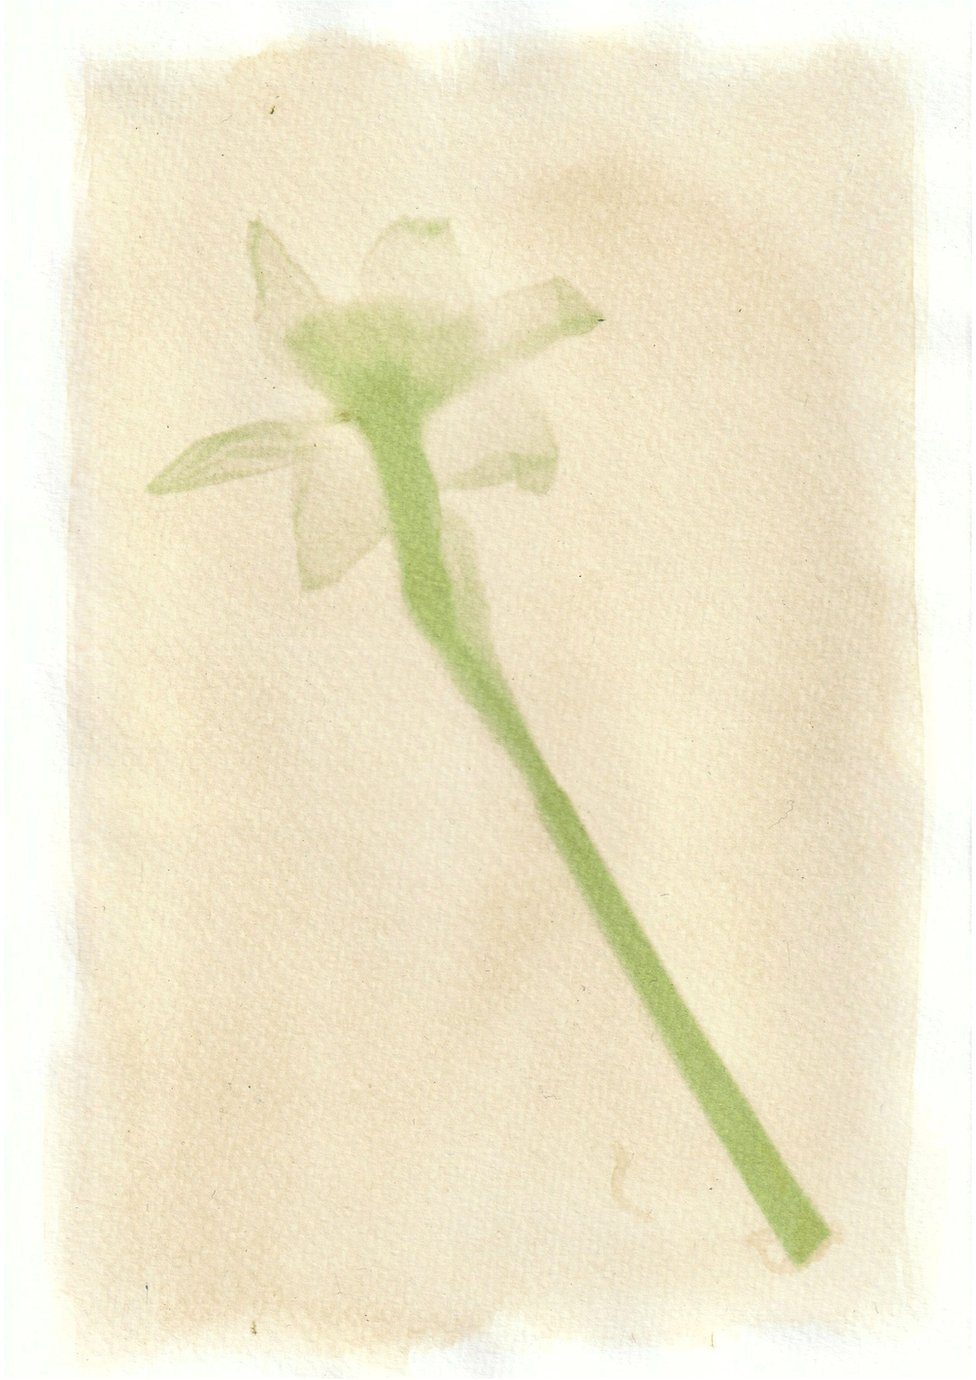 An anthotype print of a green daffodil